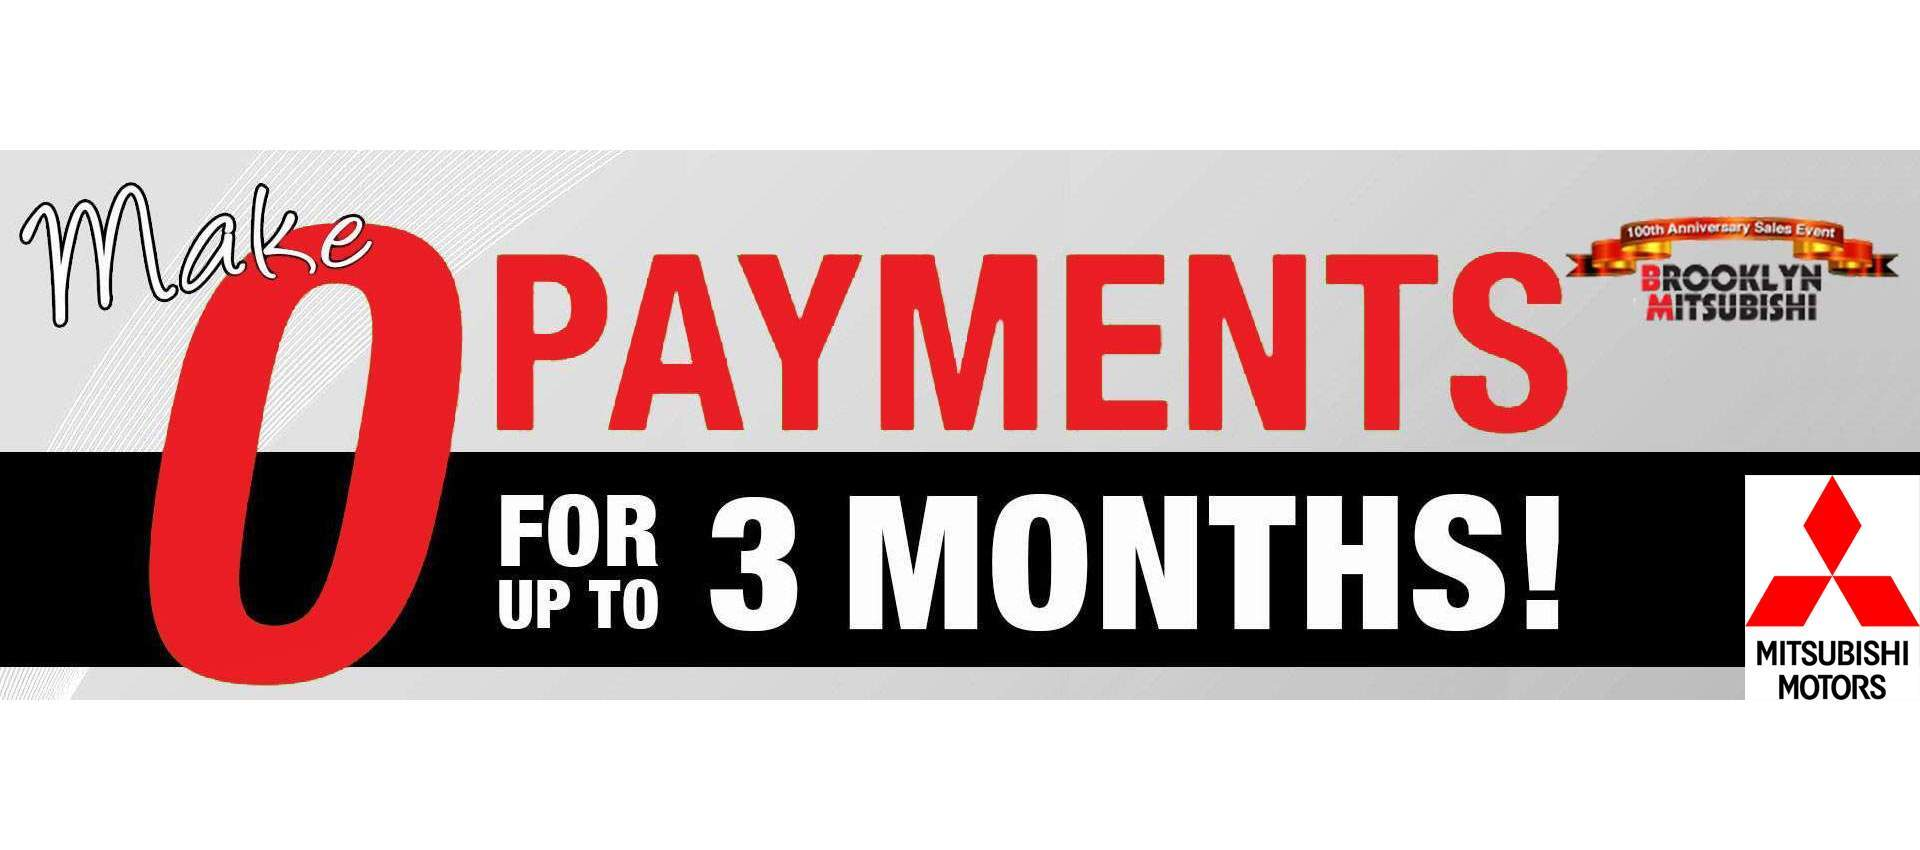 0 Payments For 3 Months